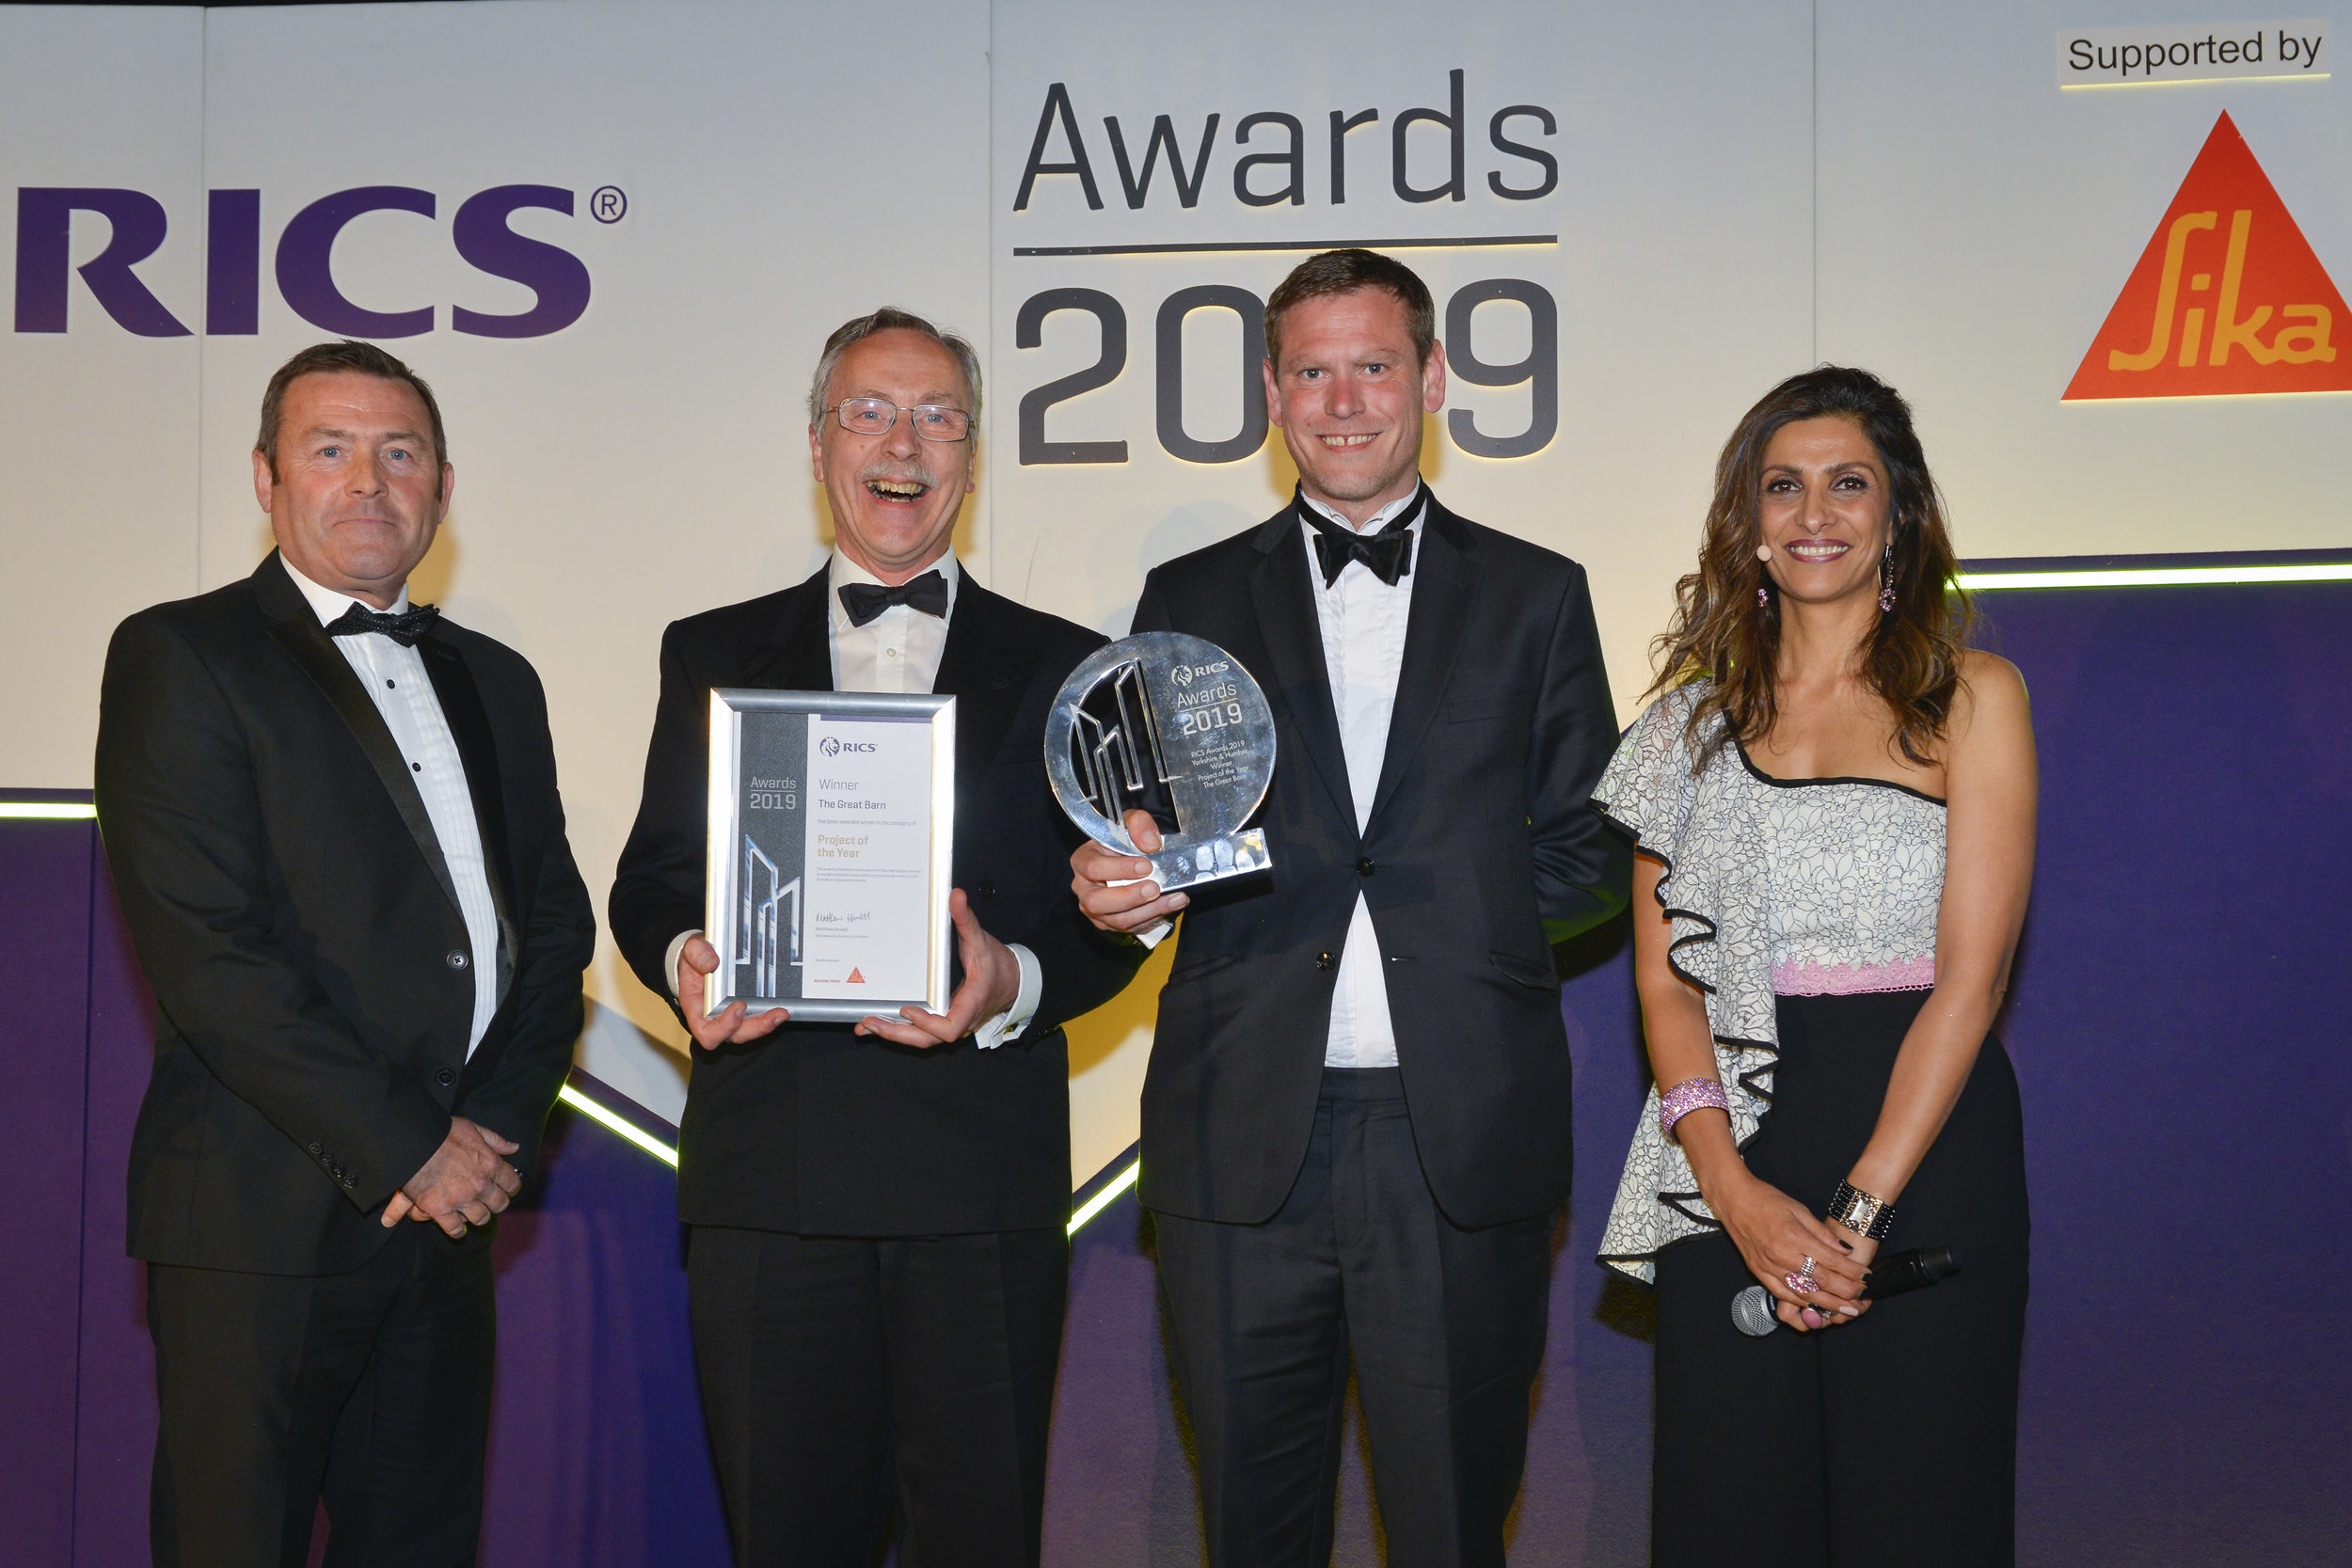 Rics awards